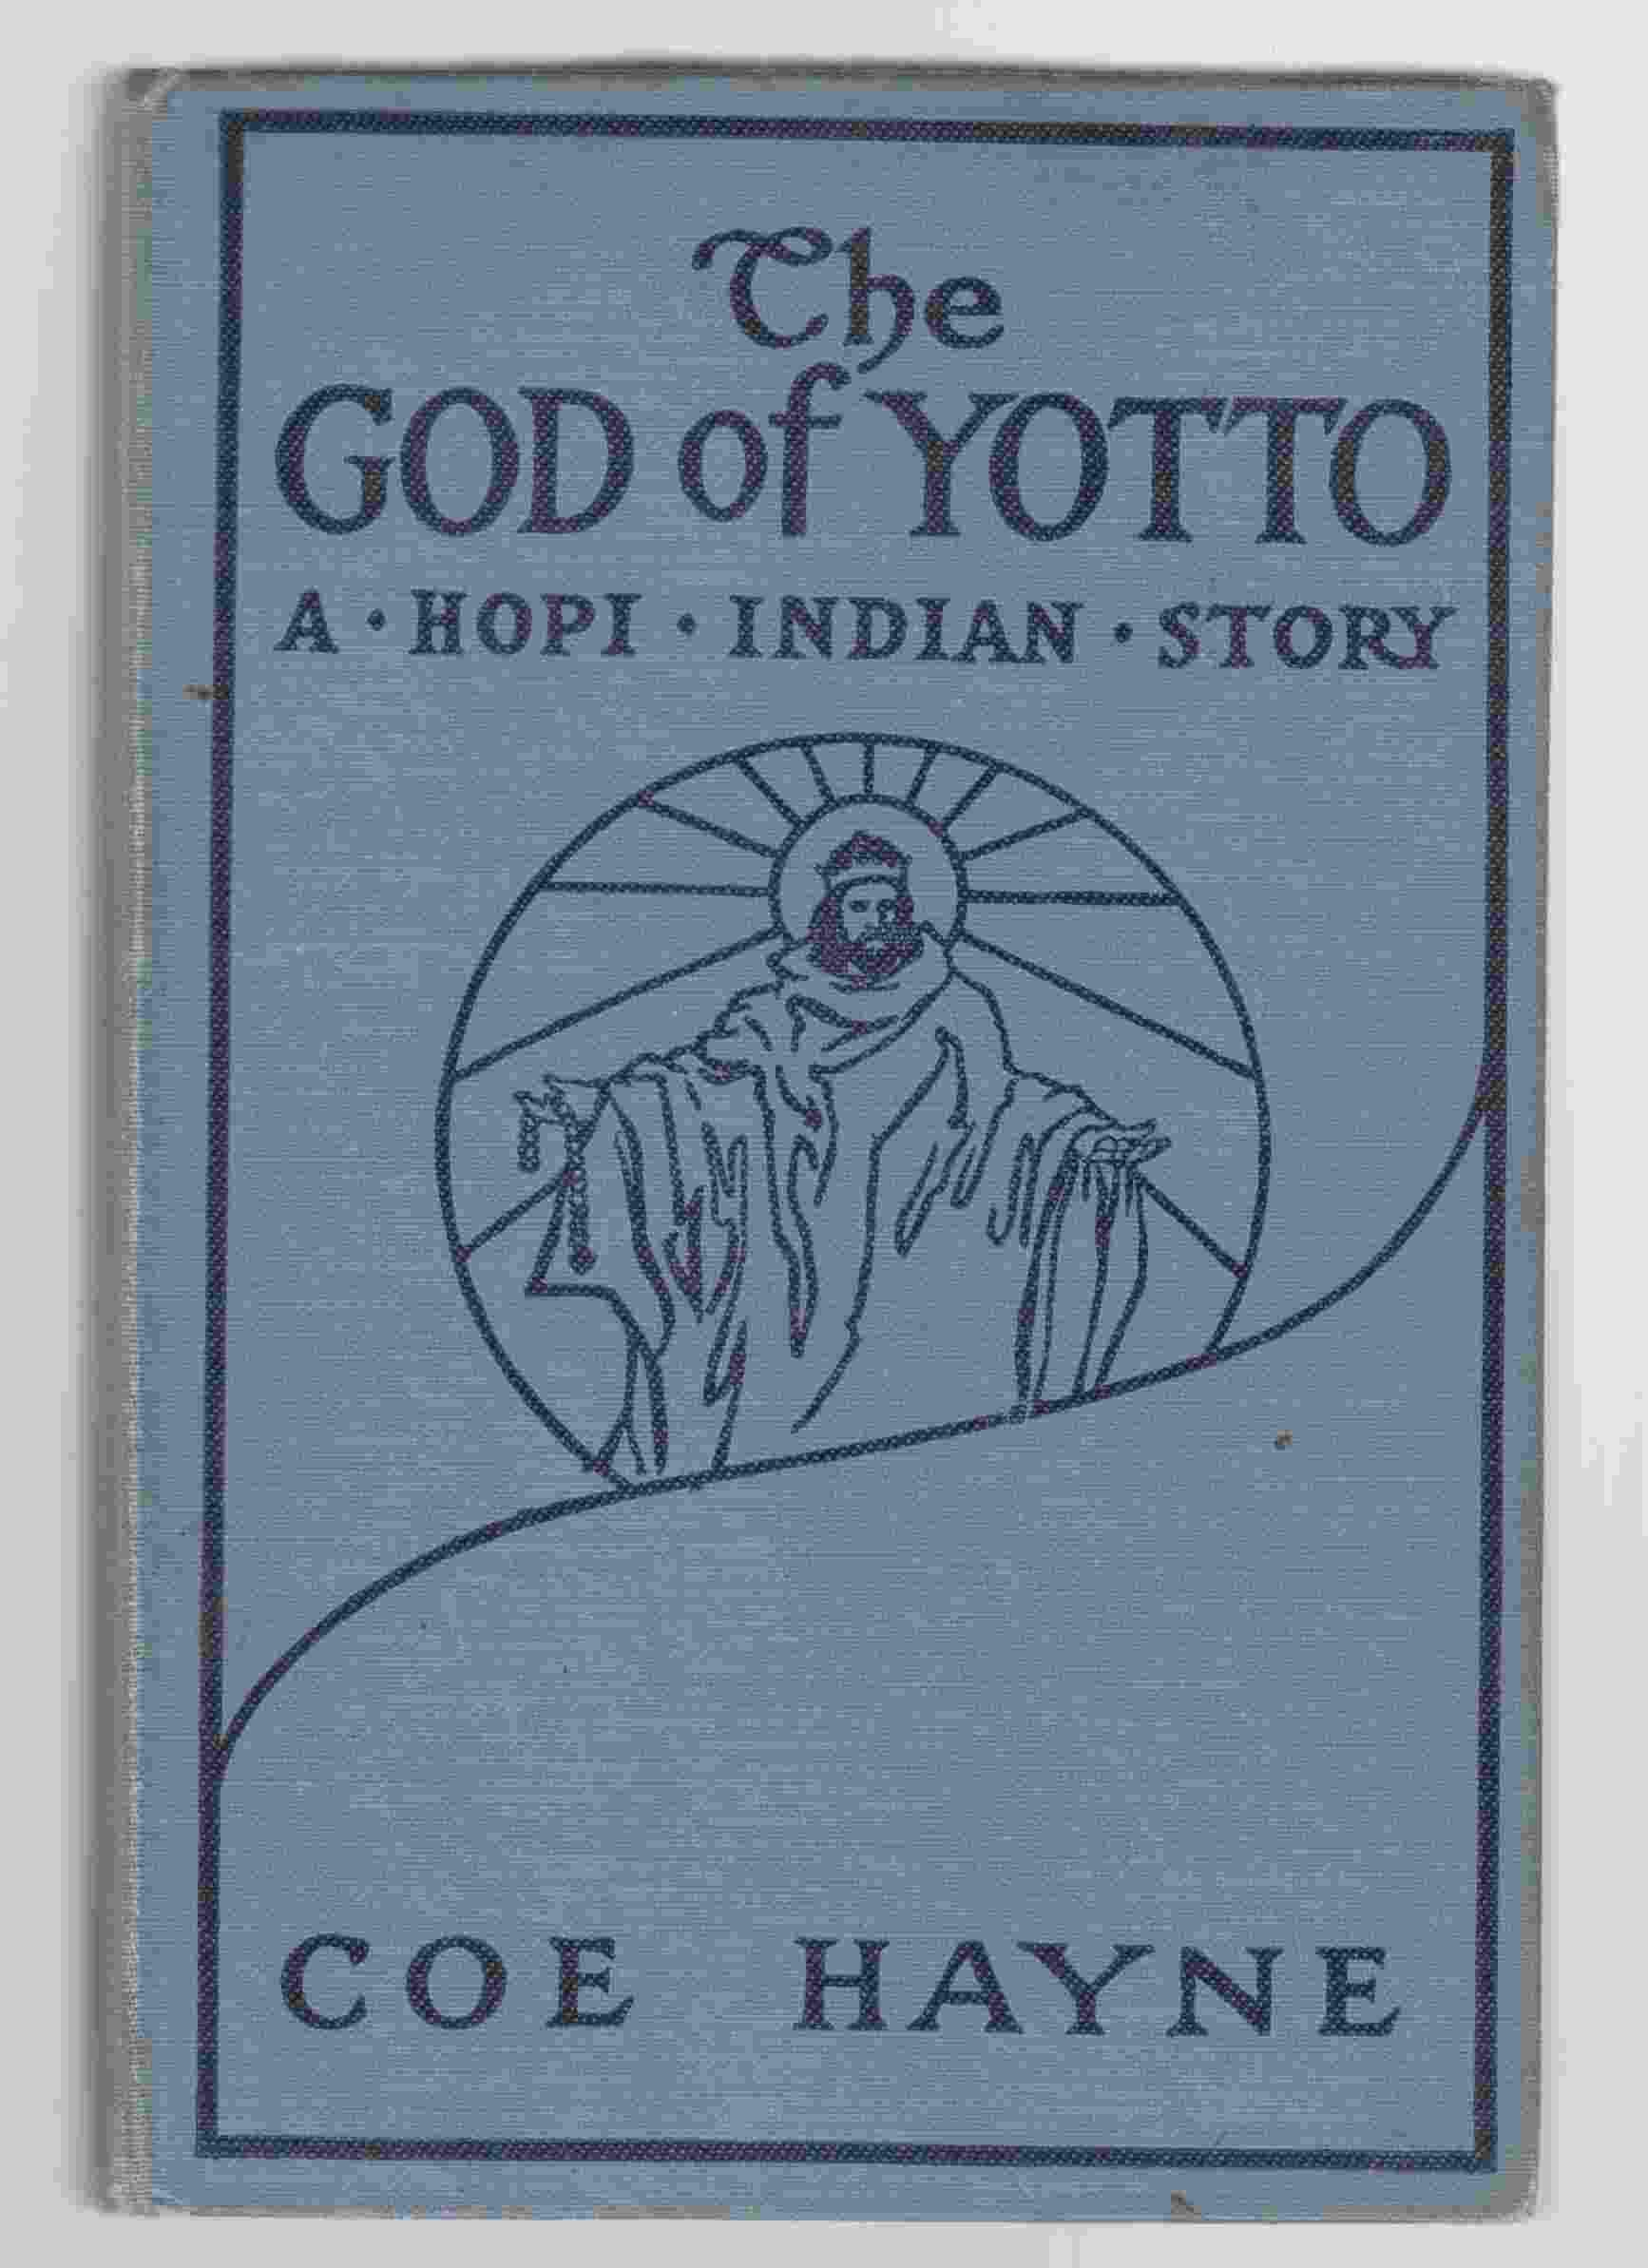 Image for The God of Yotto - The Lost City A Hopi Indian Story